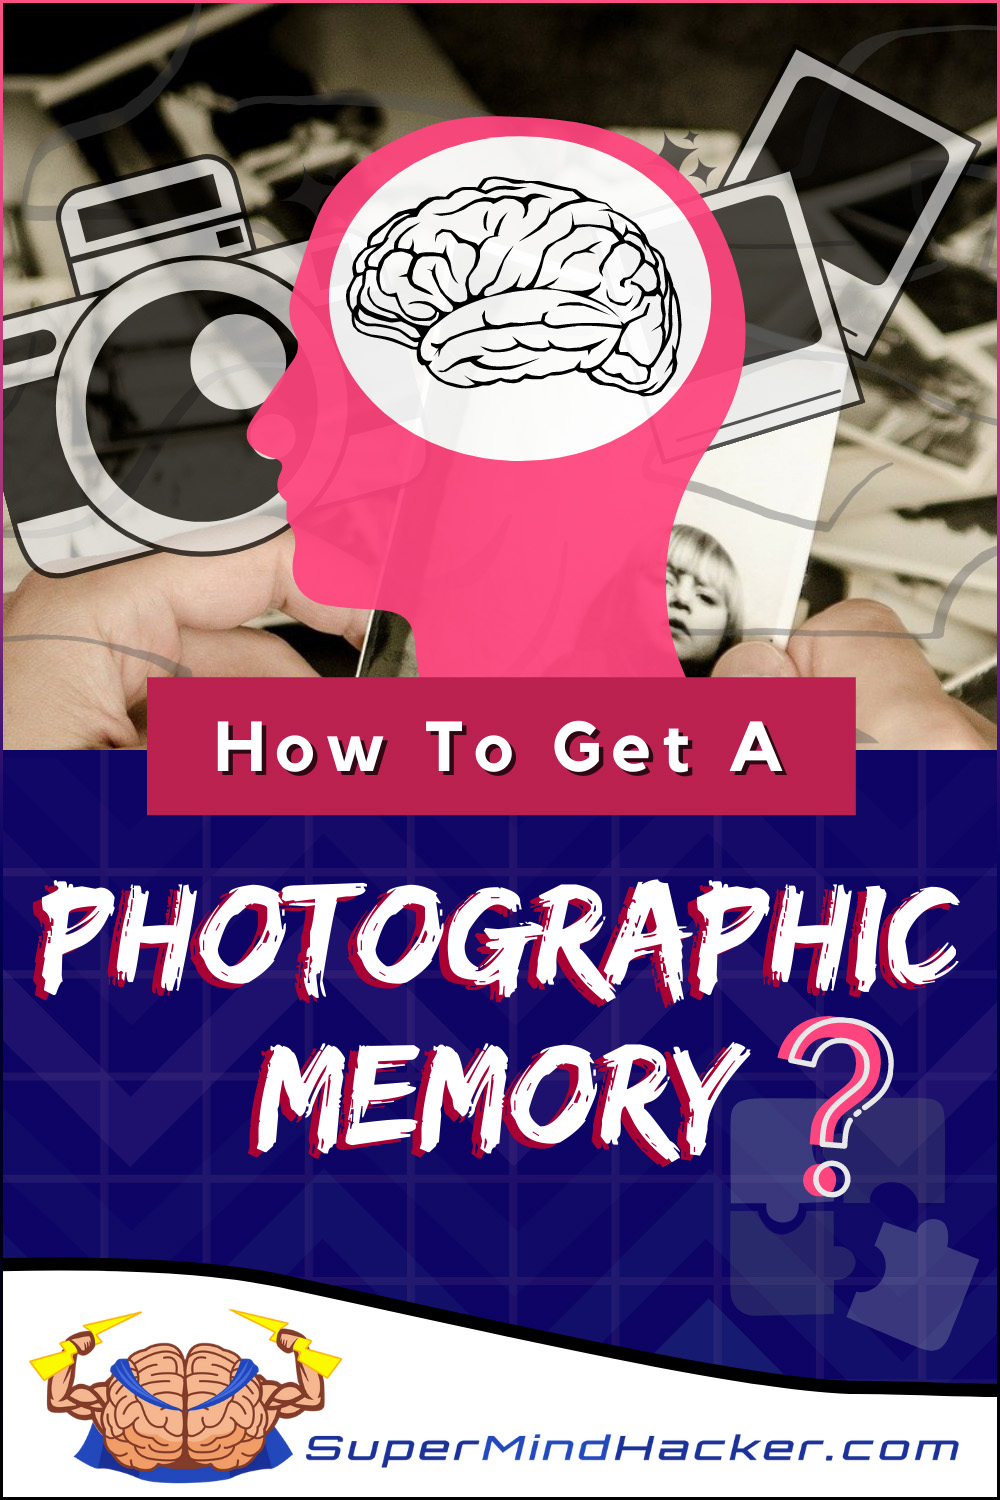 14 Ways – How To Get A Photographic Memory FAST!